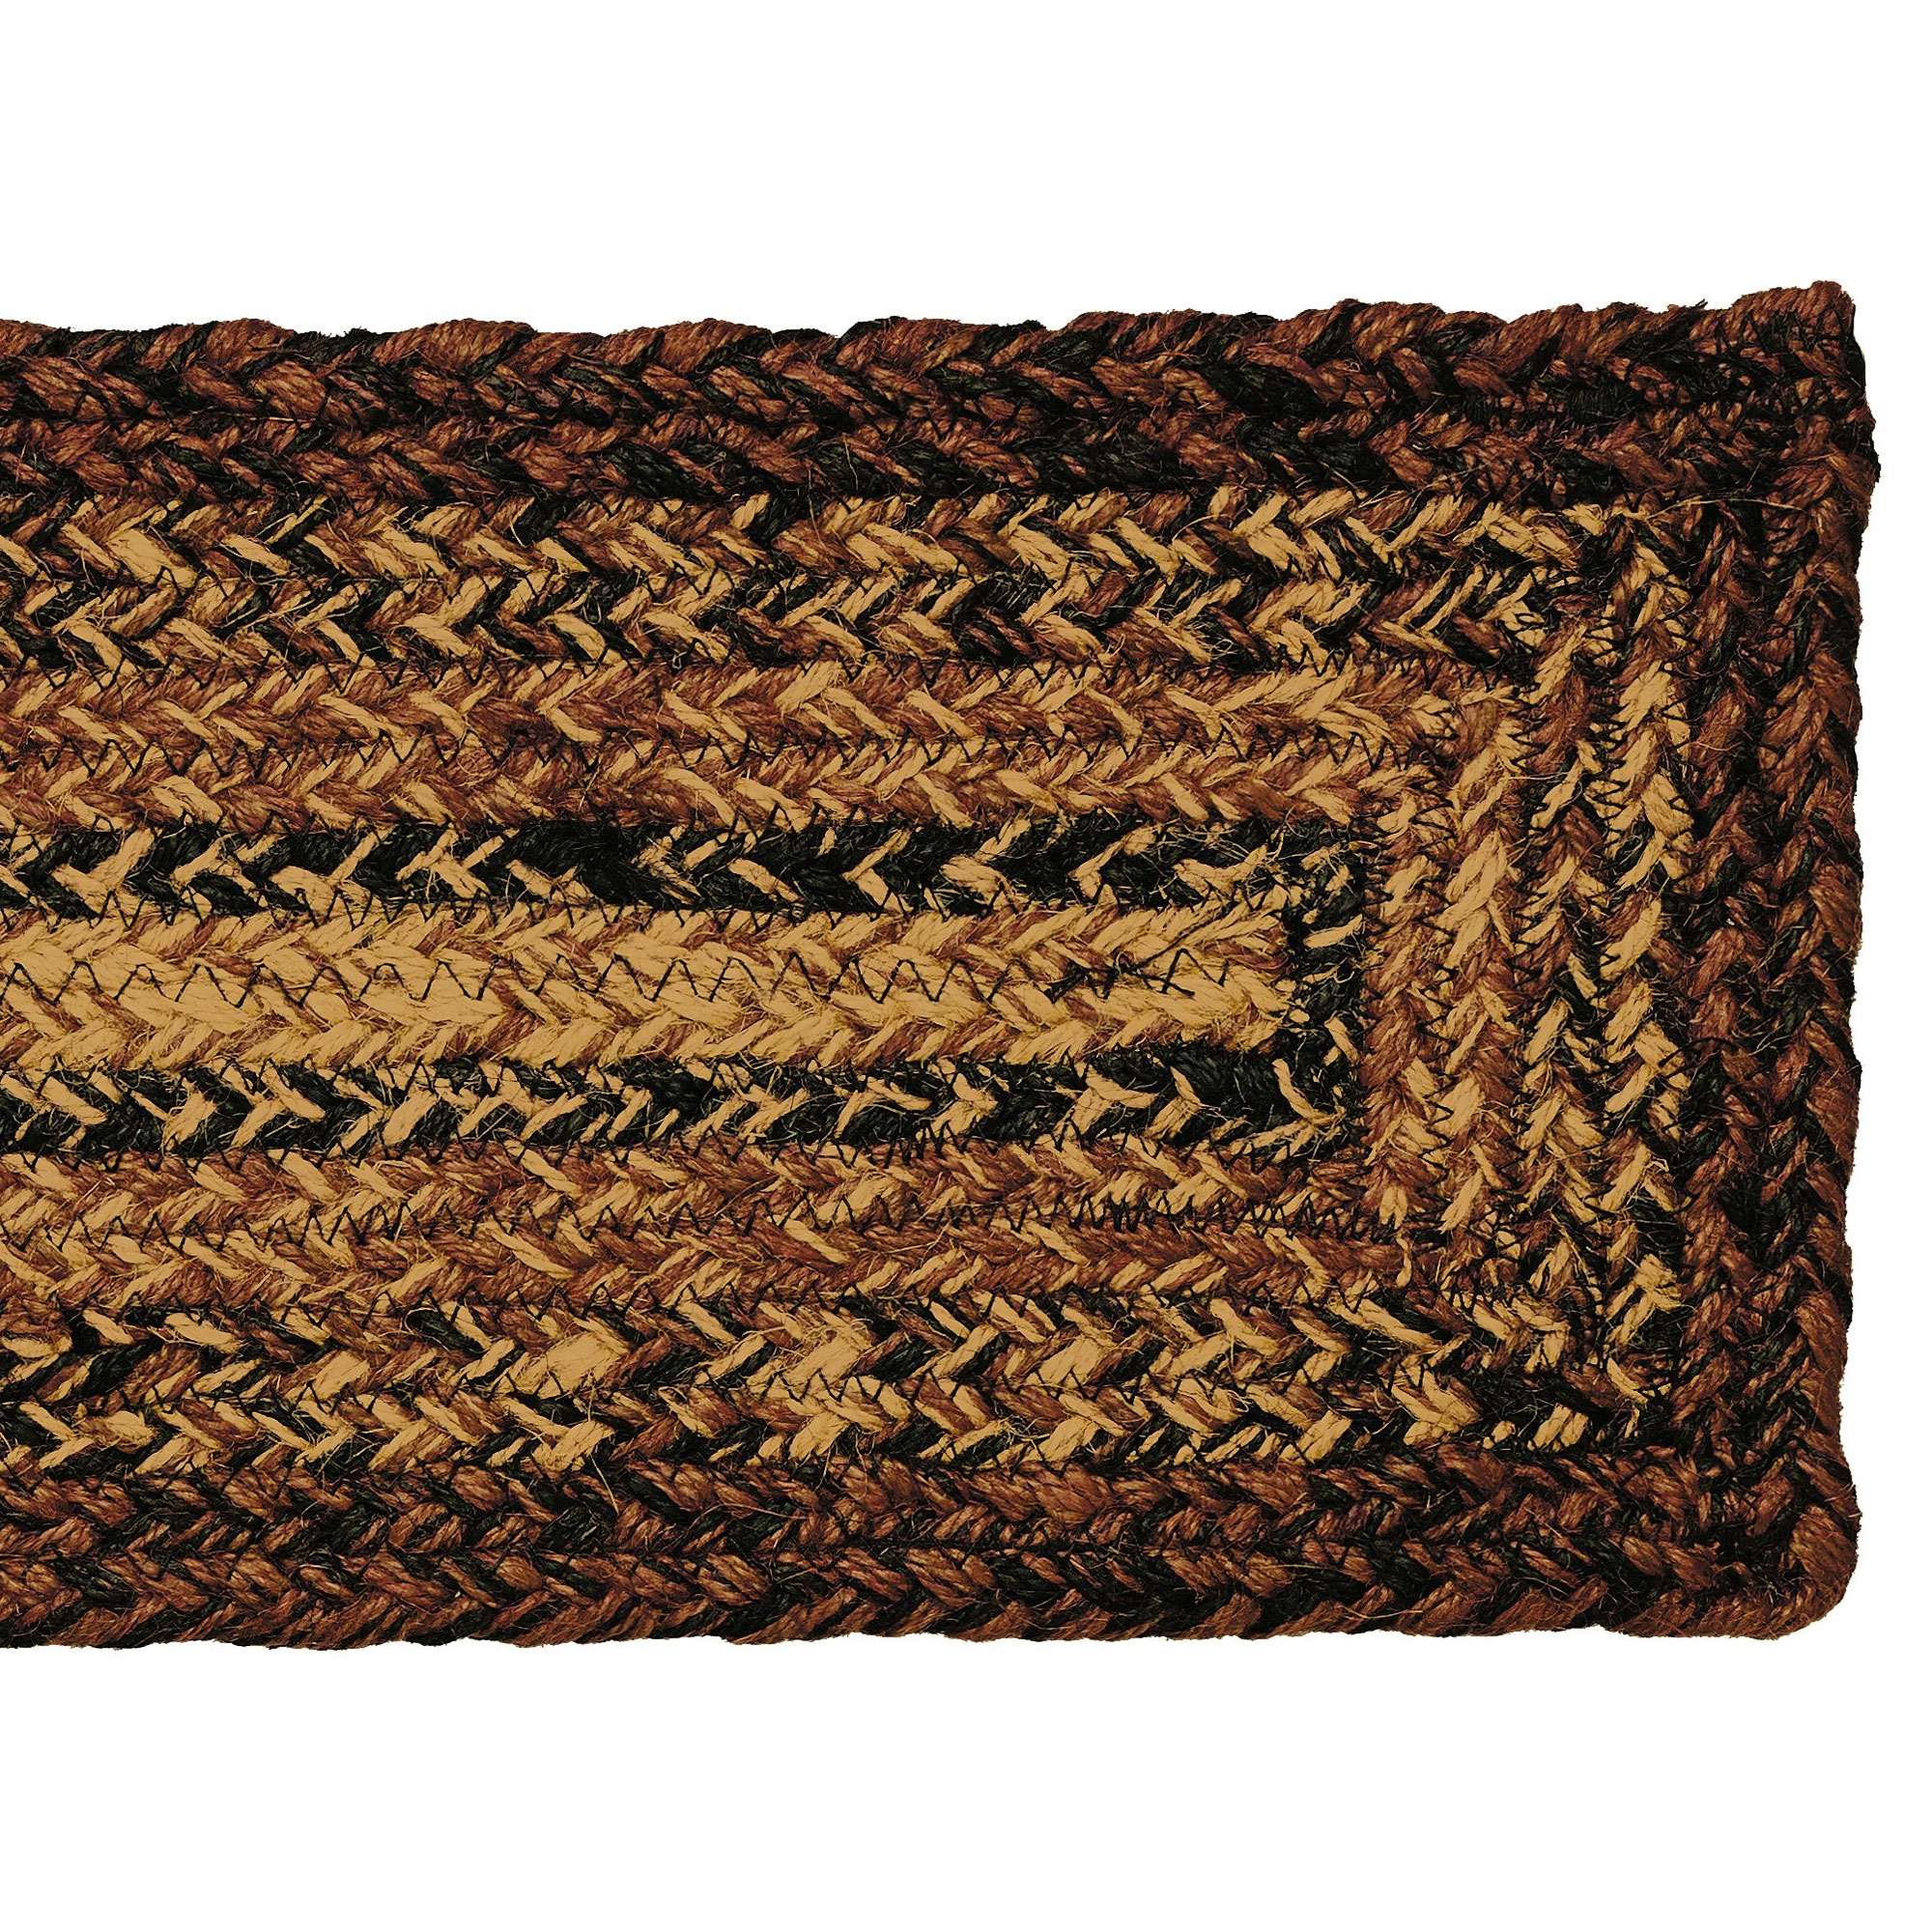 Ihf Country Jute Braided Oval Stair Treads For Checkerberry 8×28 With Oval Stair Tread Rugs (#17 of 20)